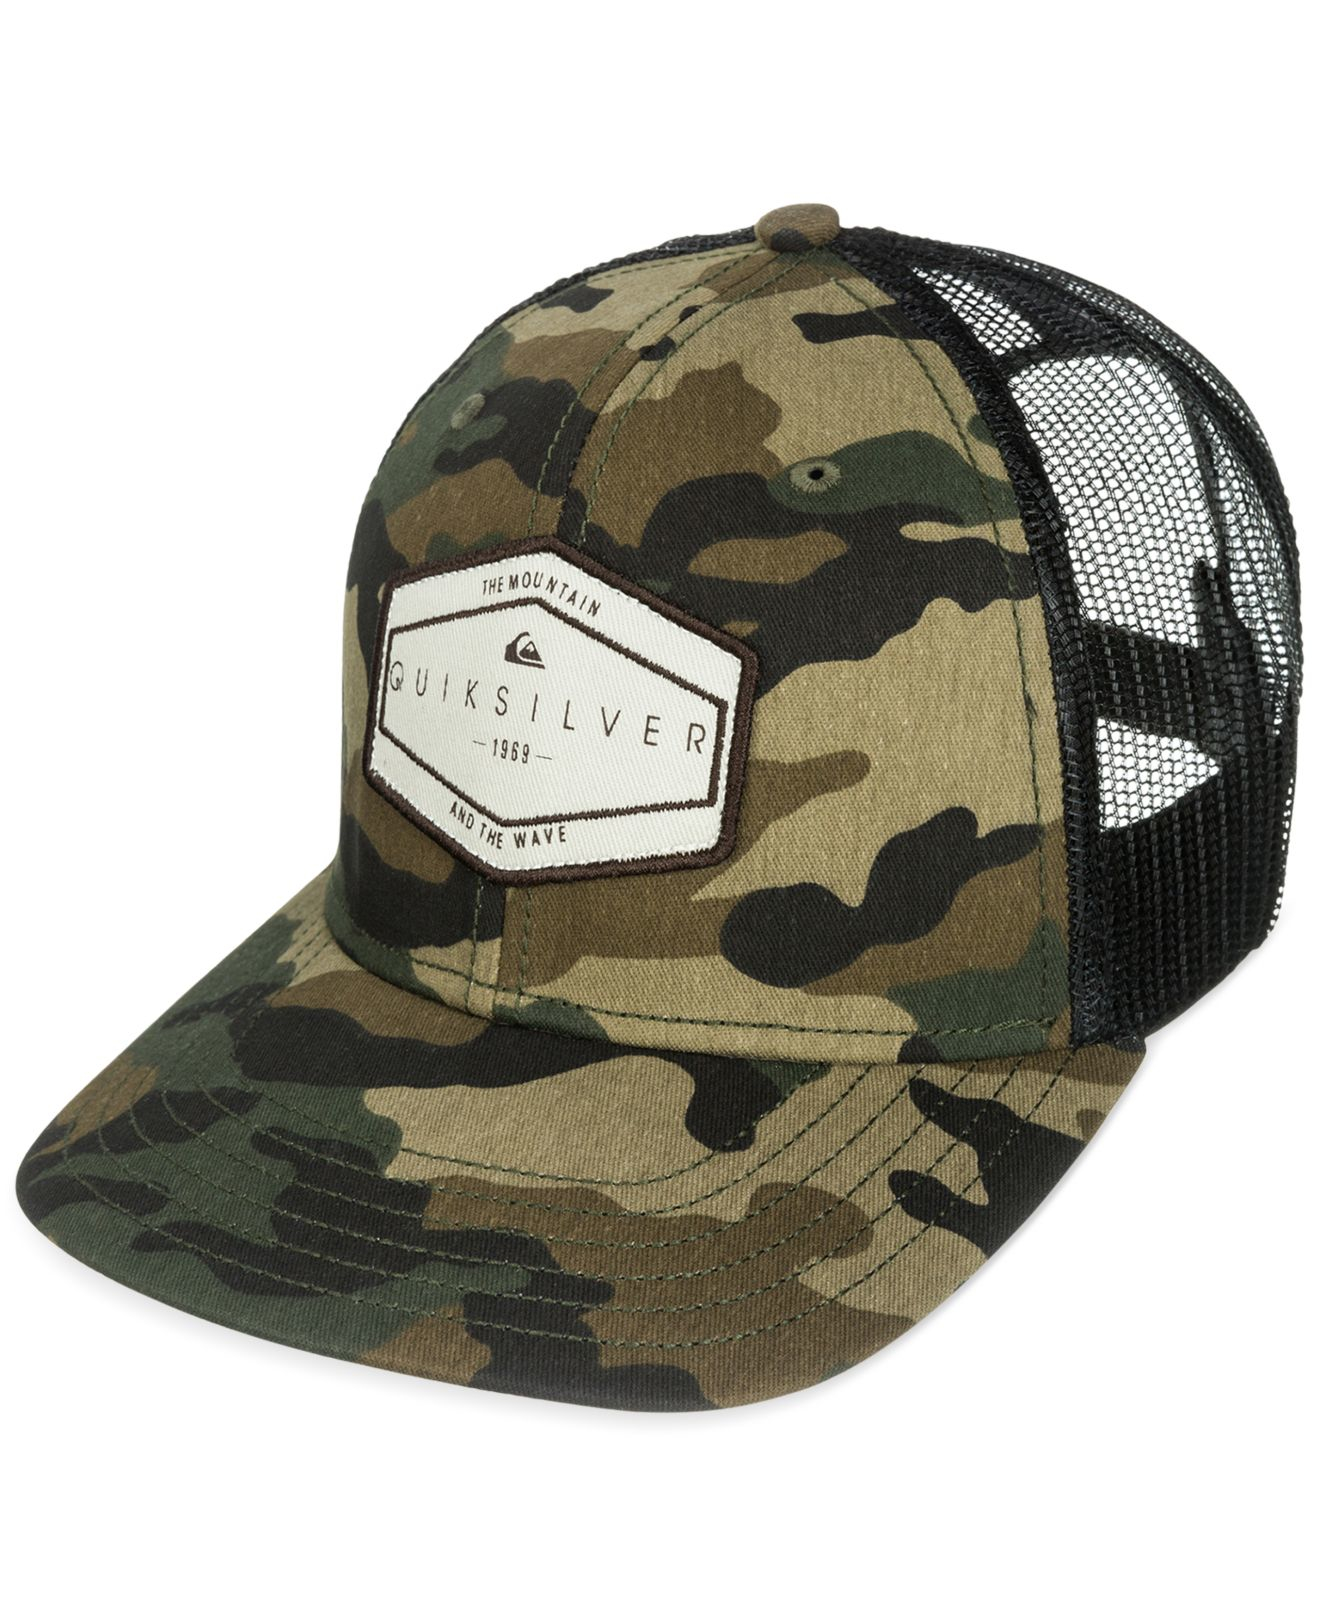 600d5ae221a inexpensive quiksilver camo trucker hat 40b72 ac463